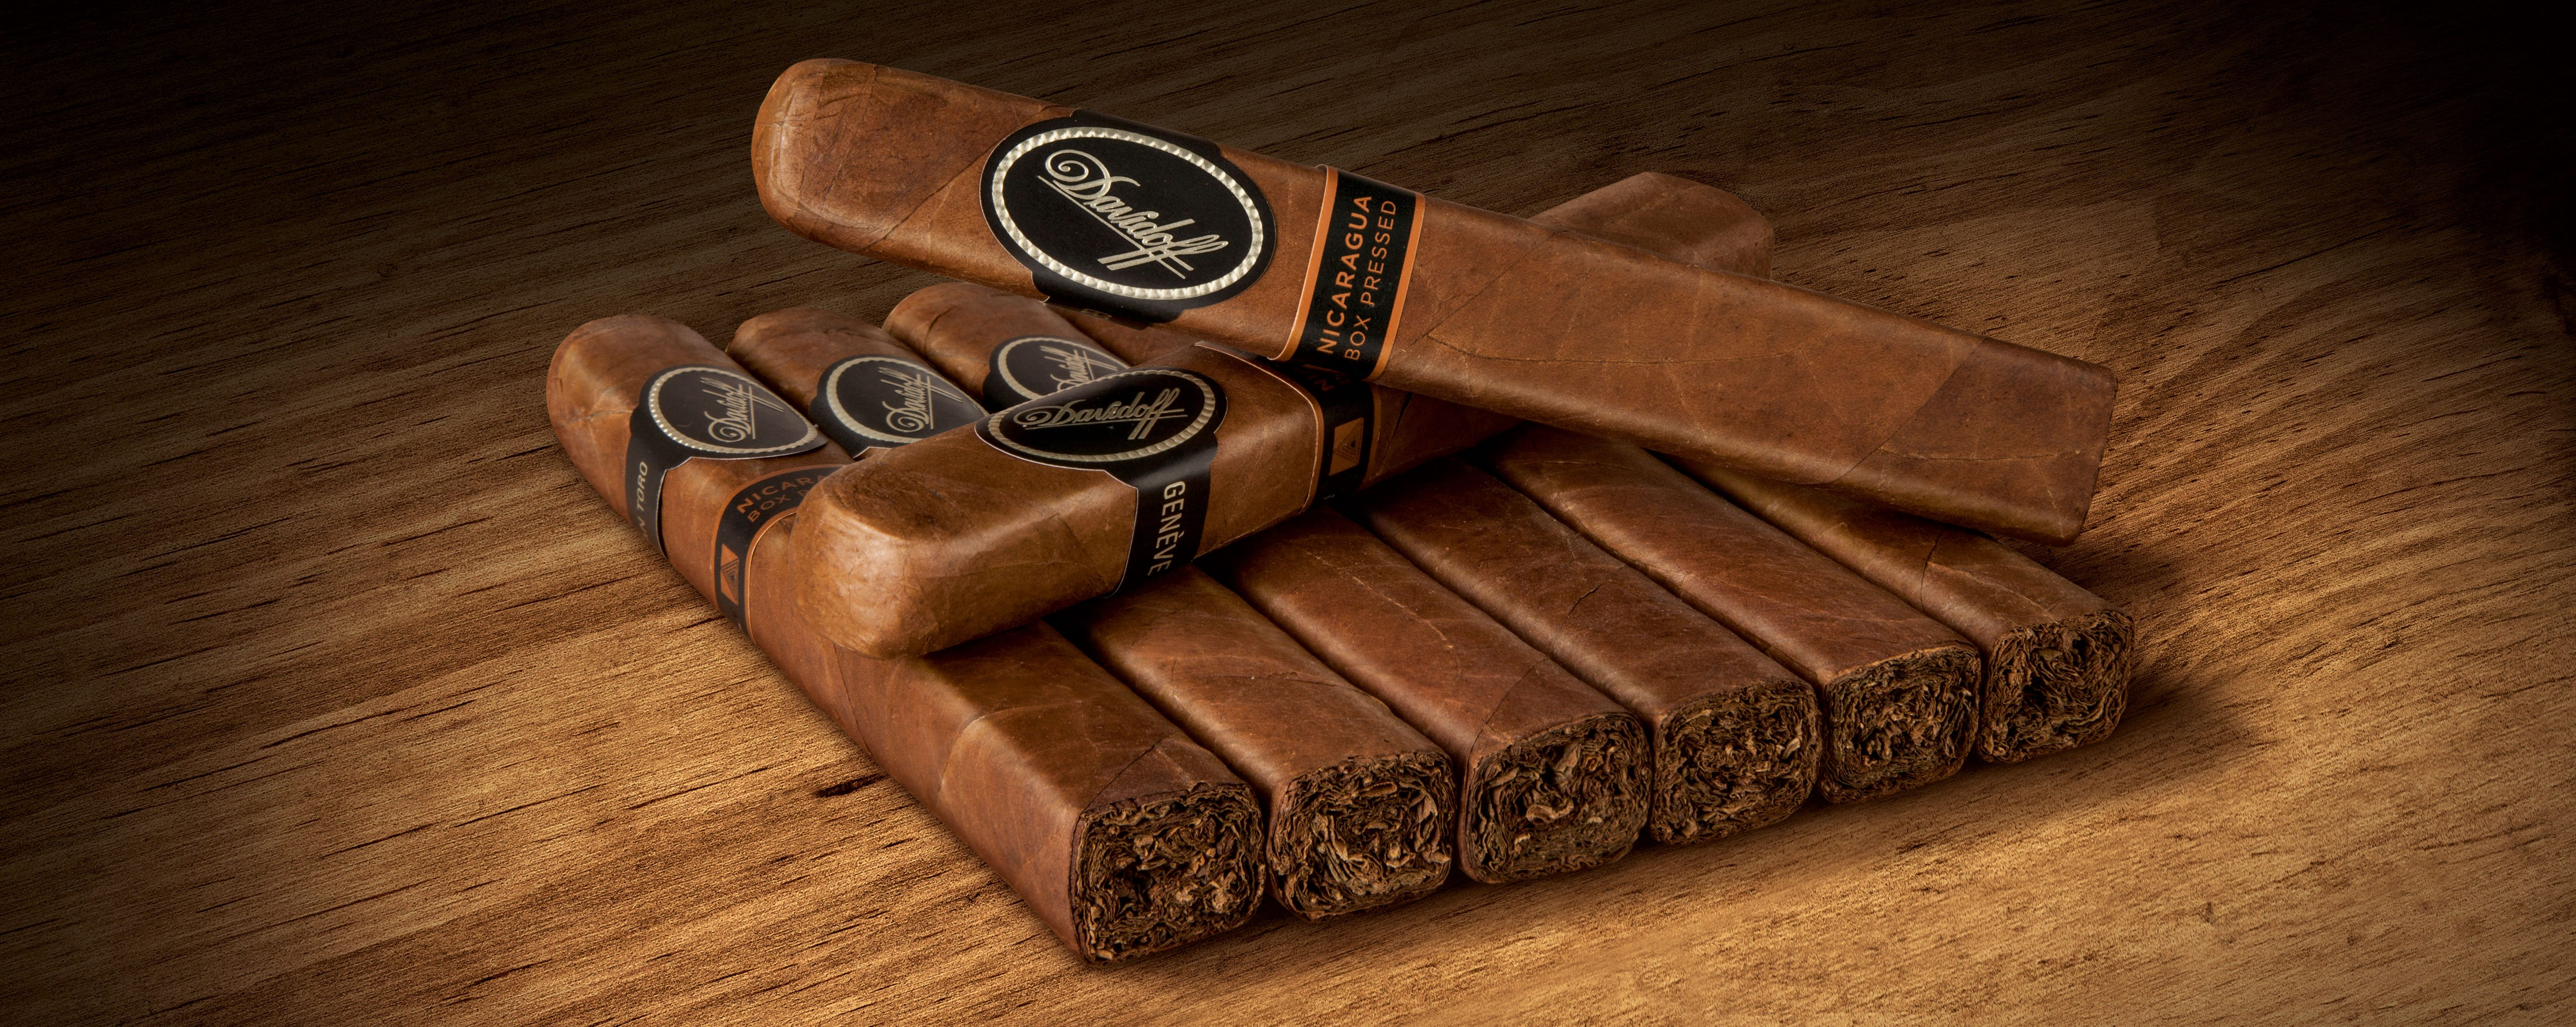 Davidoff's New And Incredibly Fierce Cigar